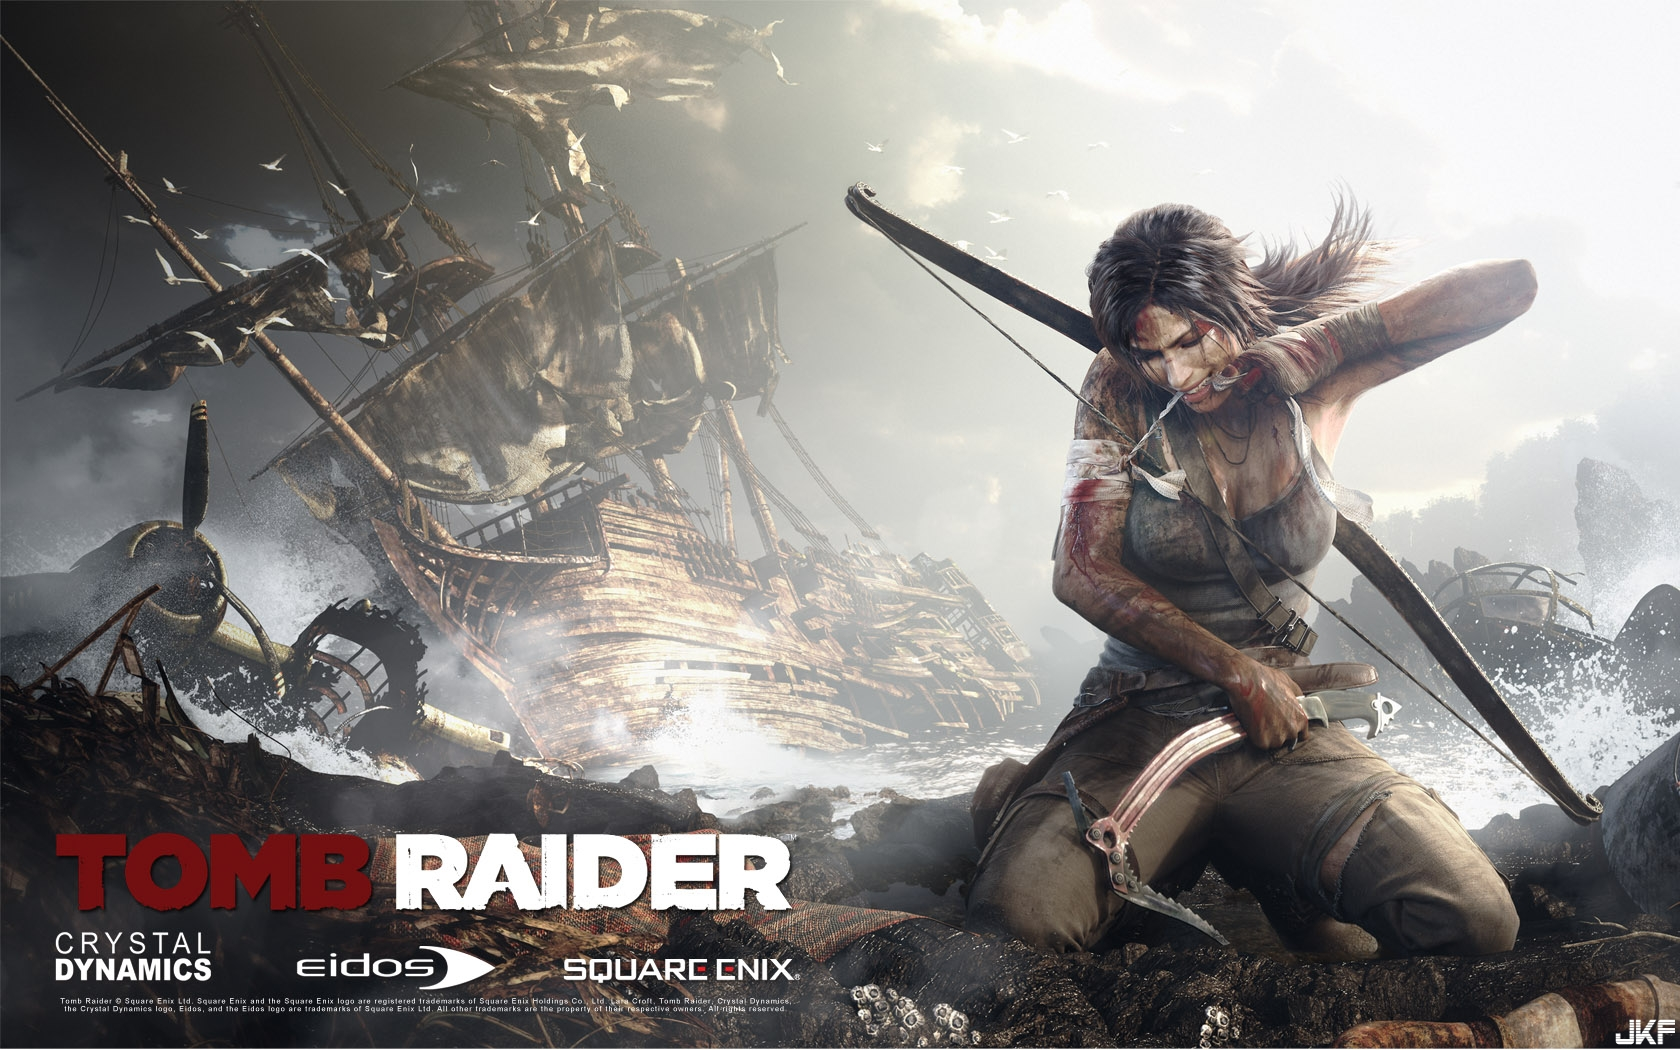 tomb-raider-wallpaper-01-1680x1050.jpg